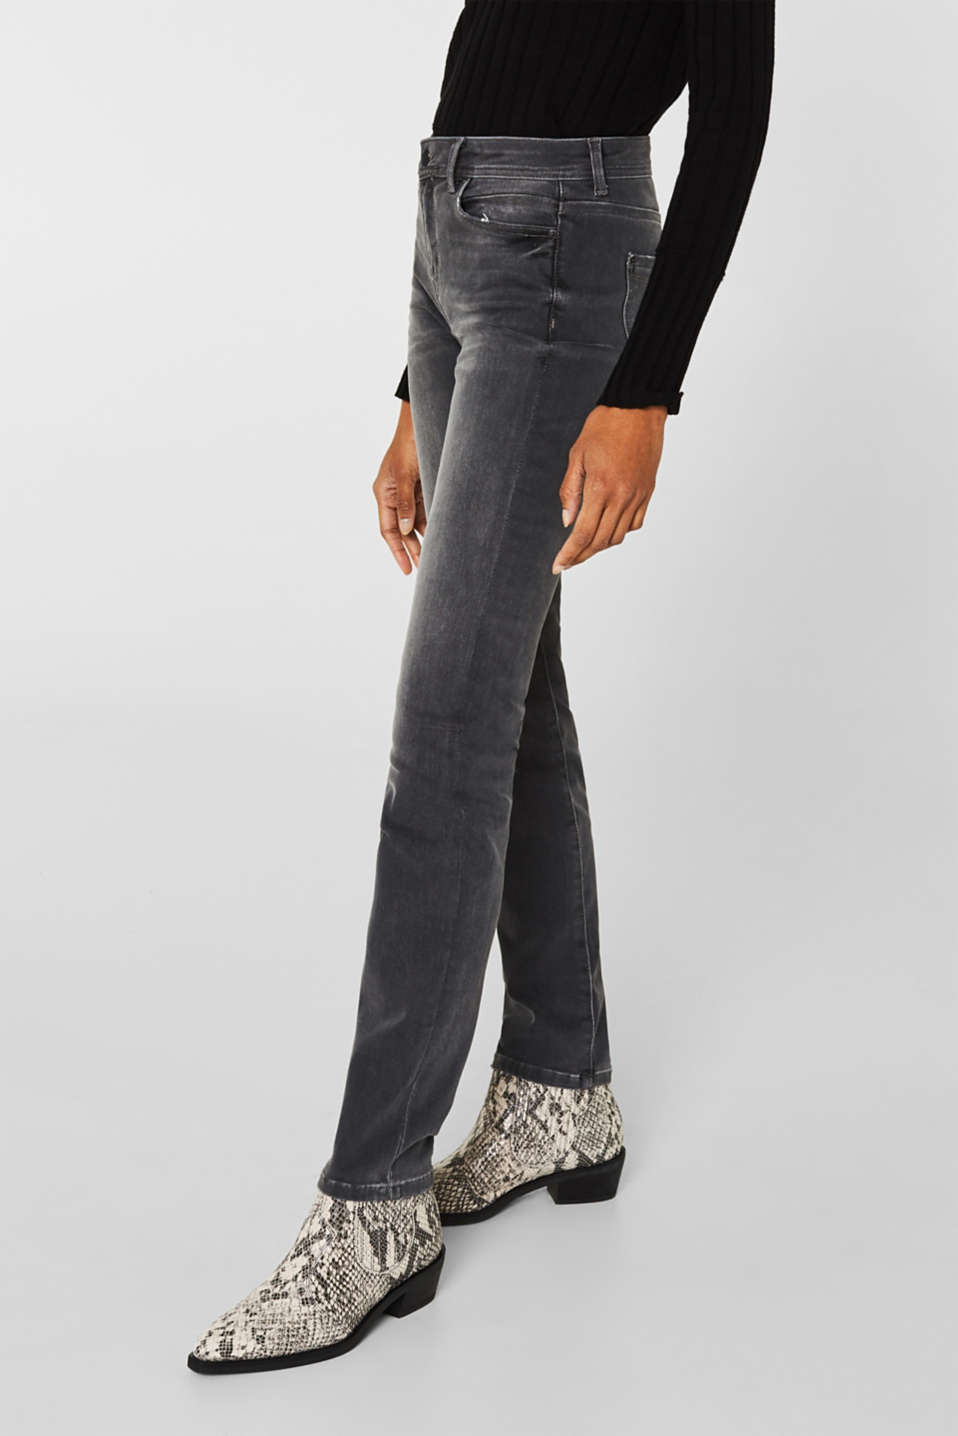 REPREVE stretch jeans with recycled polyester, GREY MEDIUM WASH, detail image number 6